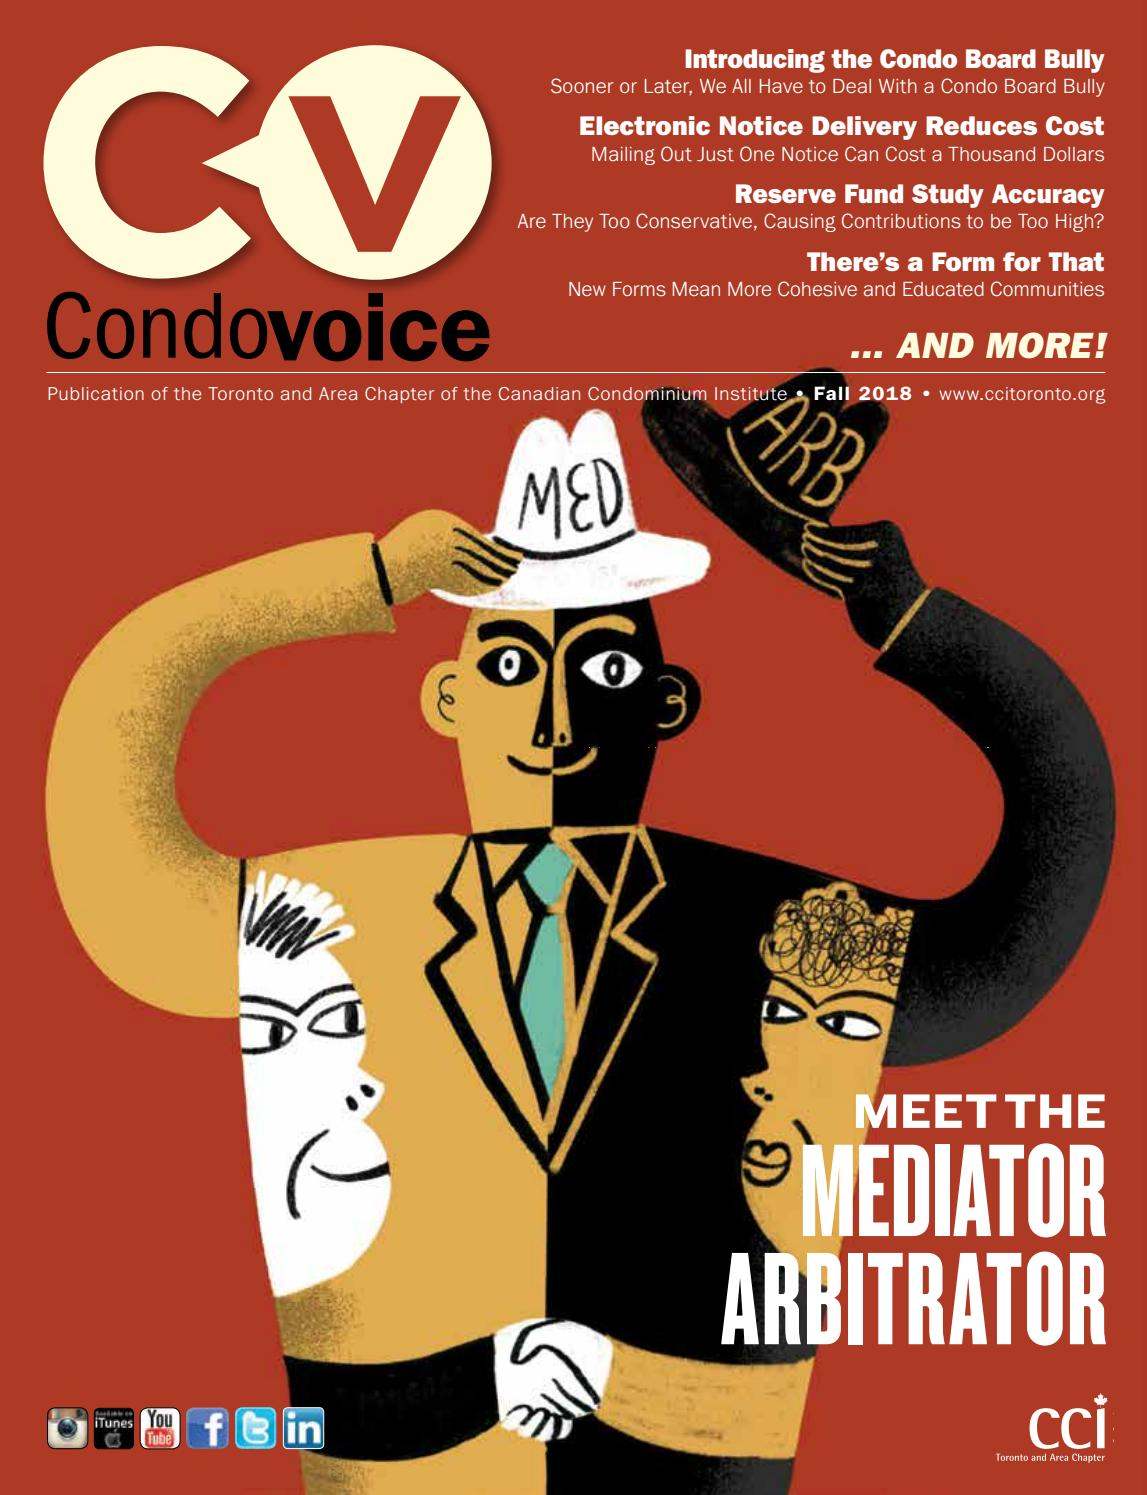 CCi-T Condovoice - Fall 2018 by LS Graphics - issuu